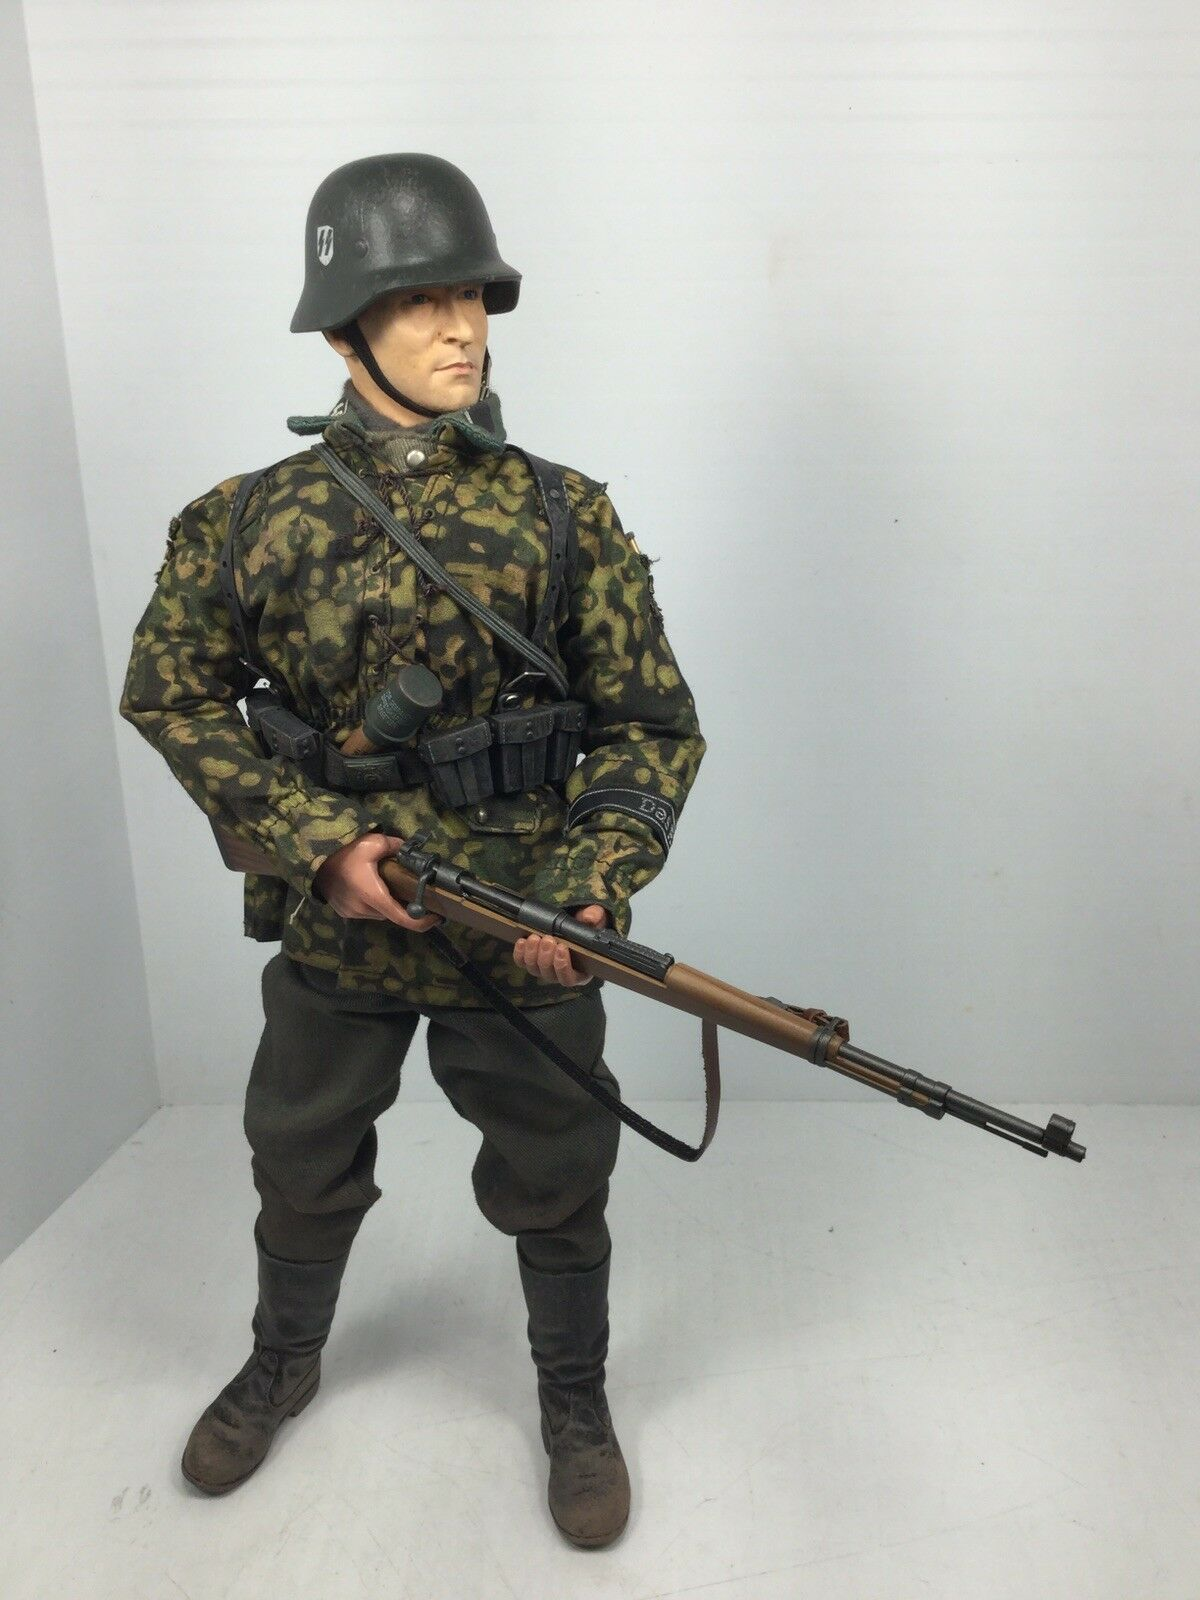 1 6 DRAGON GERMAN 2ND SS DIV INFANTRYMAN K-98 FULL GEAR +SIGNAL BBI DID 21 WW2